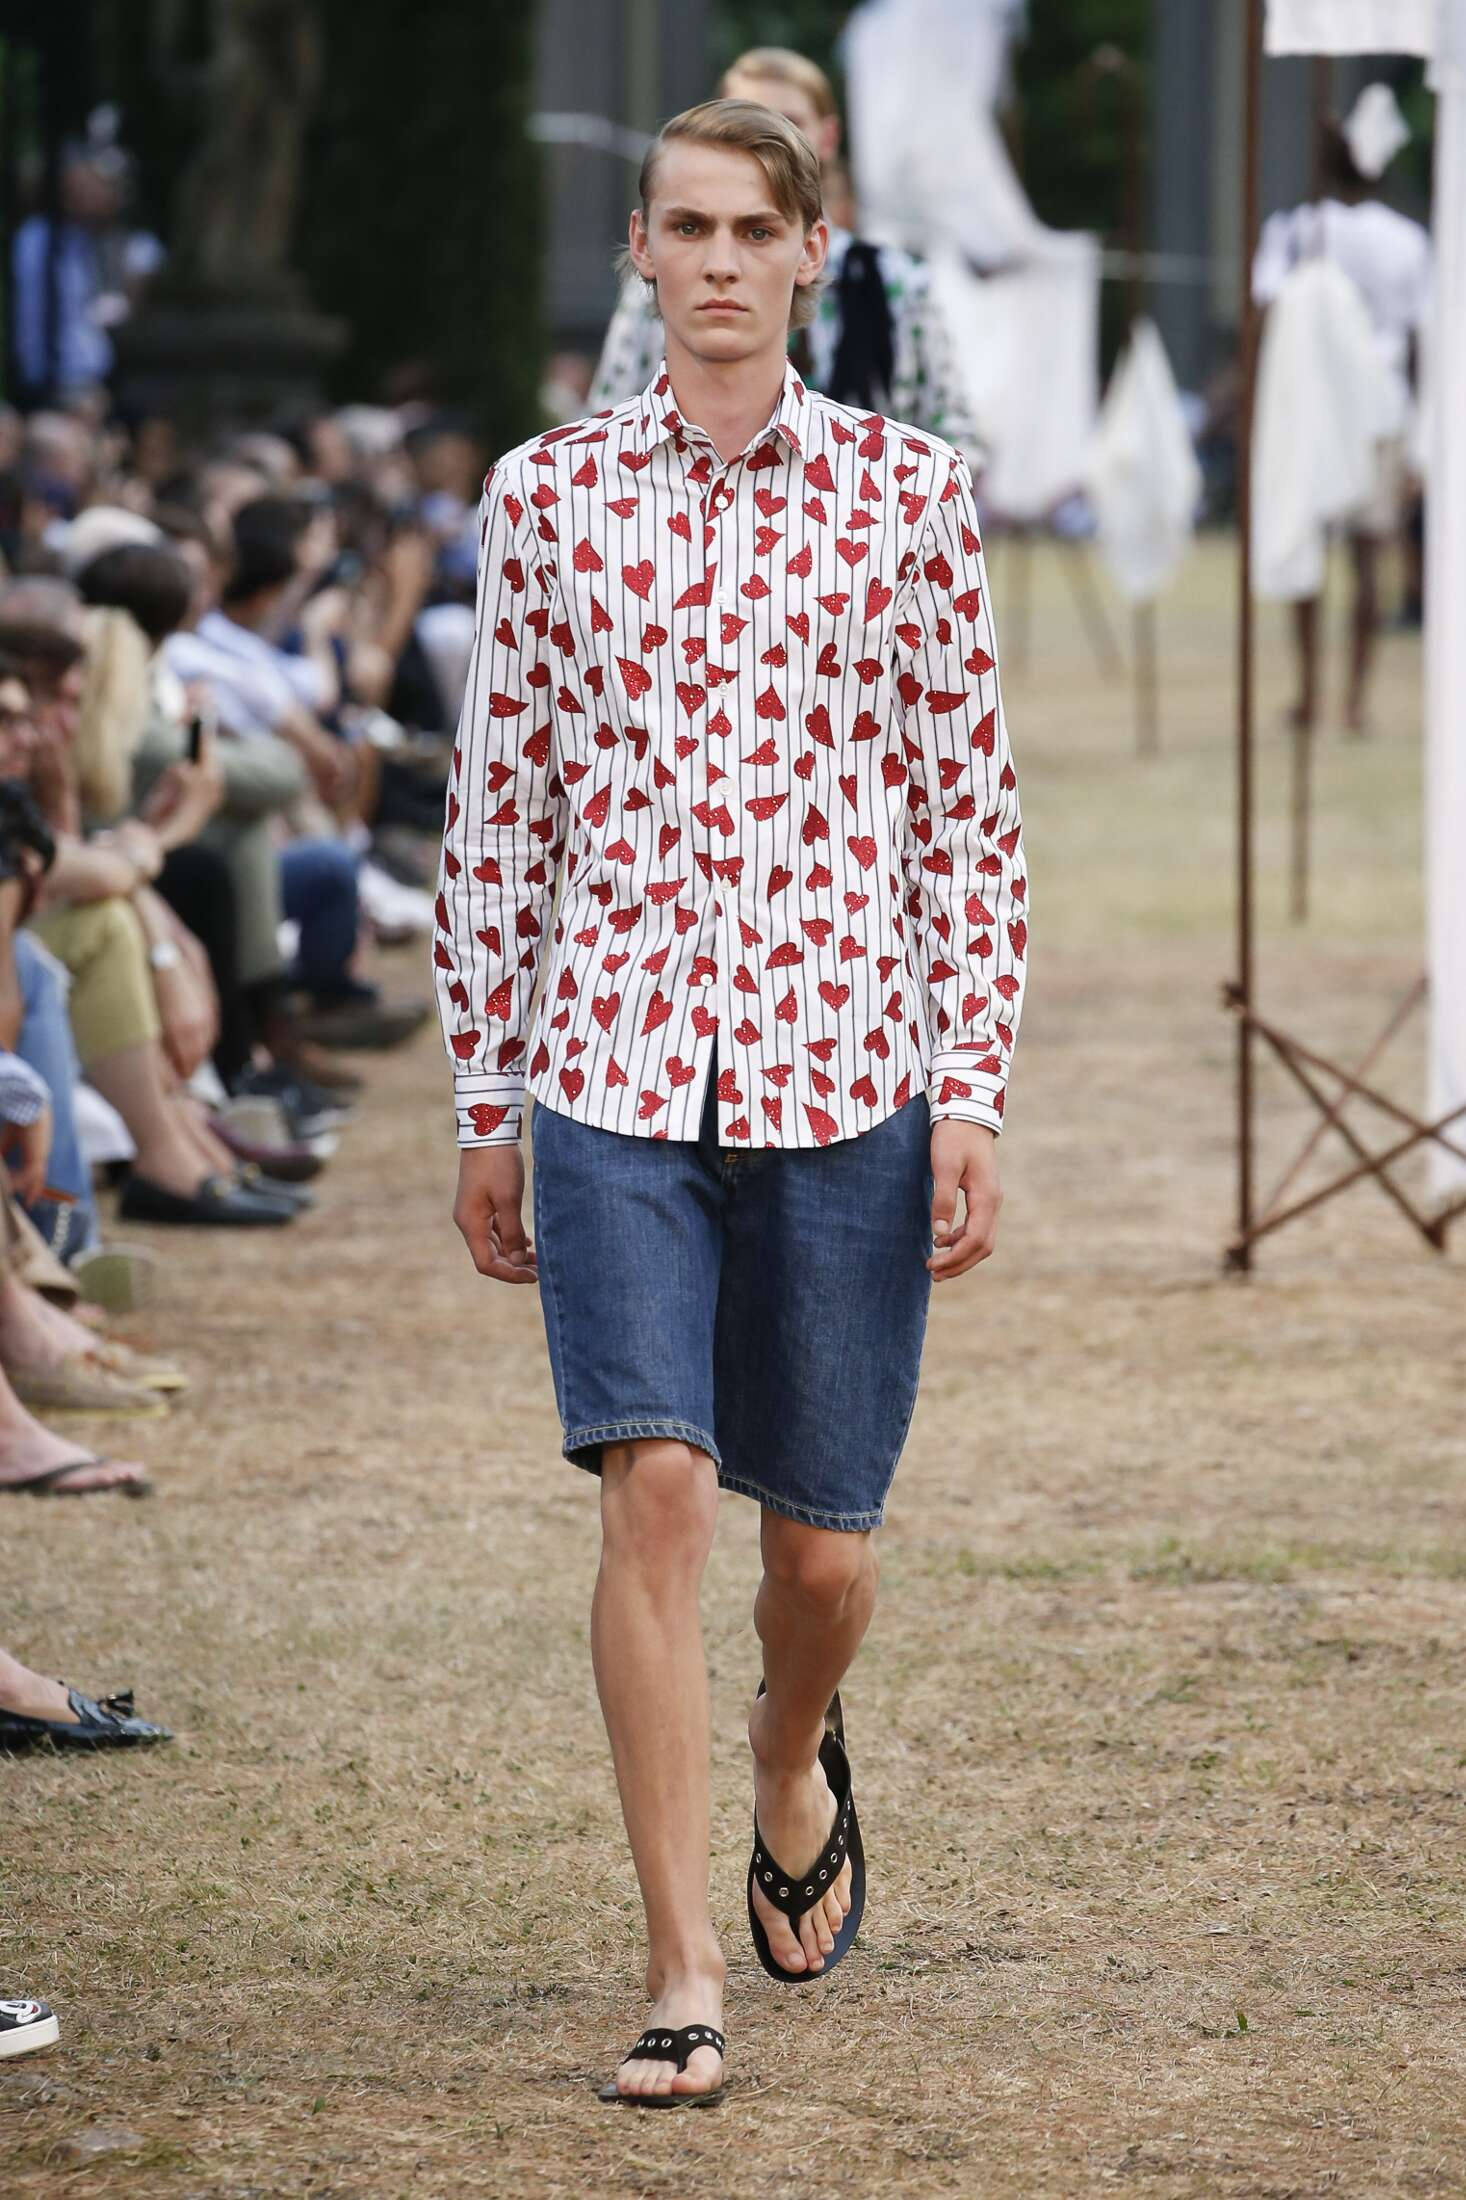 Man Summer 2018 Fashion Trends J.W. Anderson